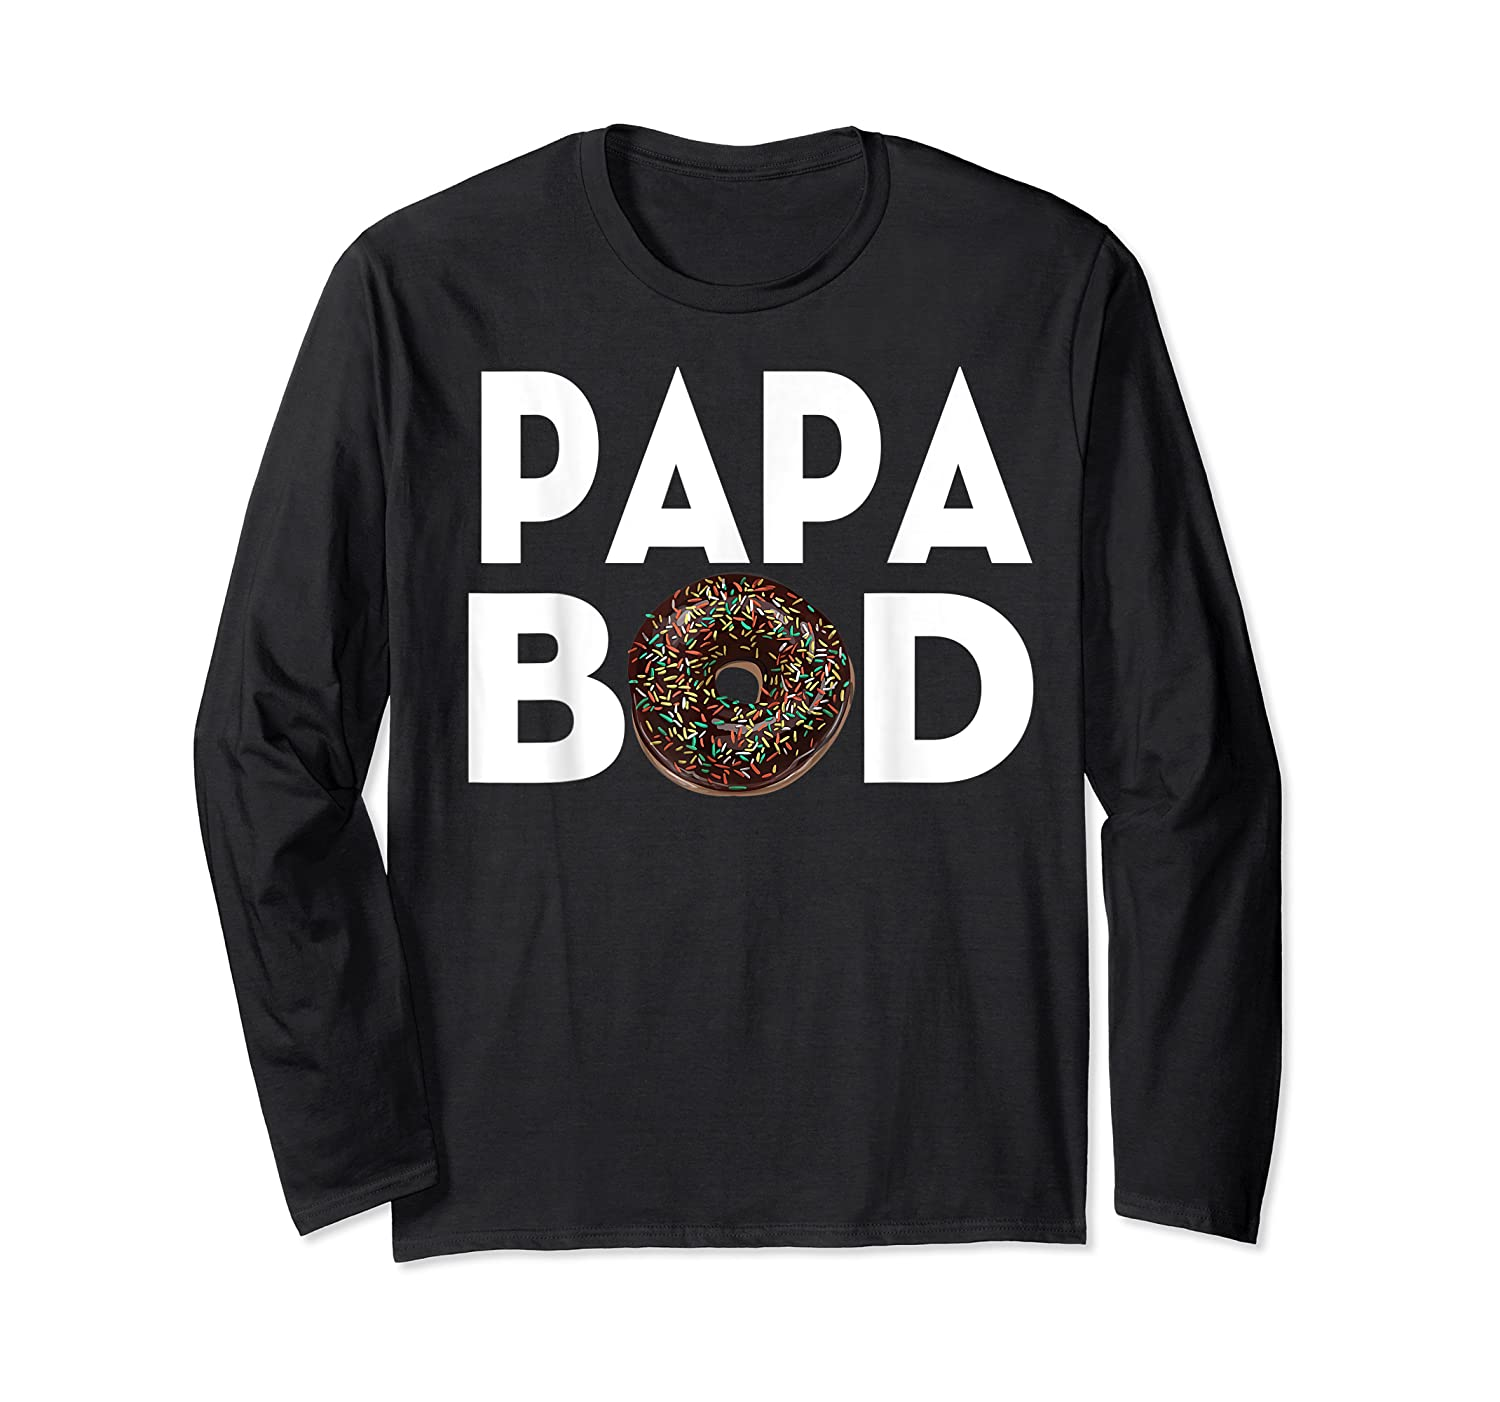 S Donut Papa Bod T Shirt Funny Father S Day Gift Long Sleeve T-shirt